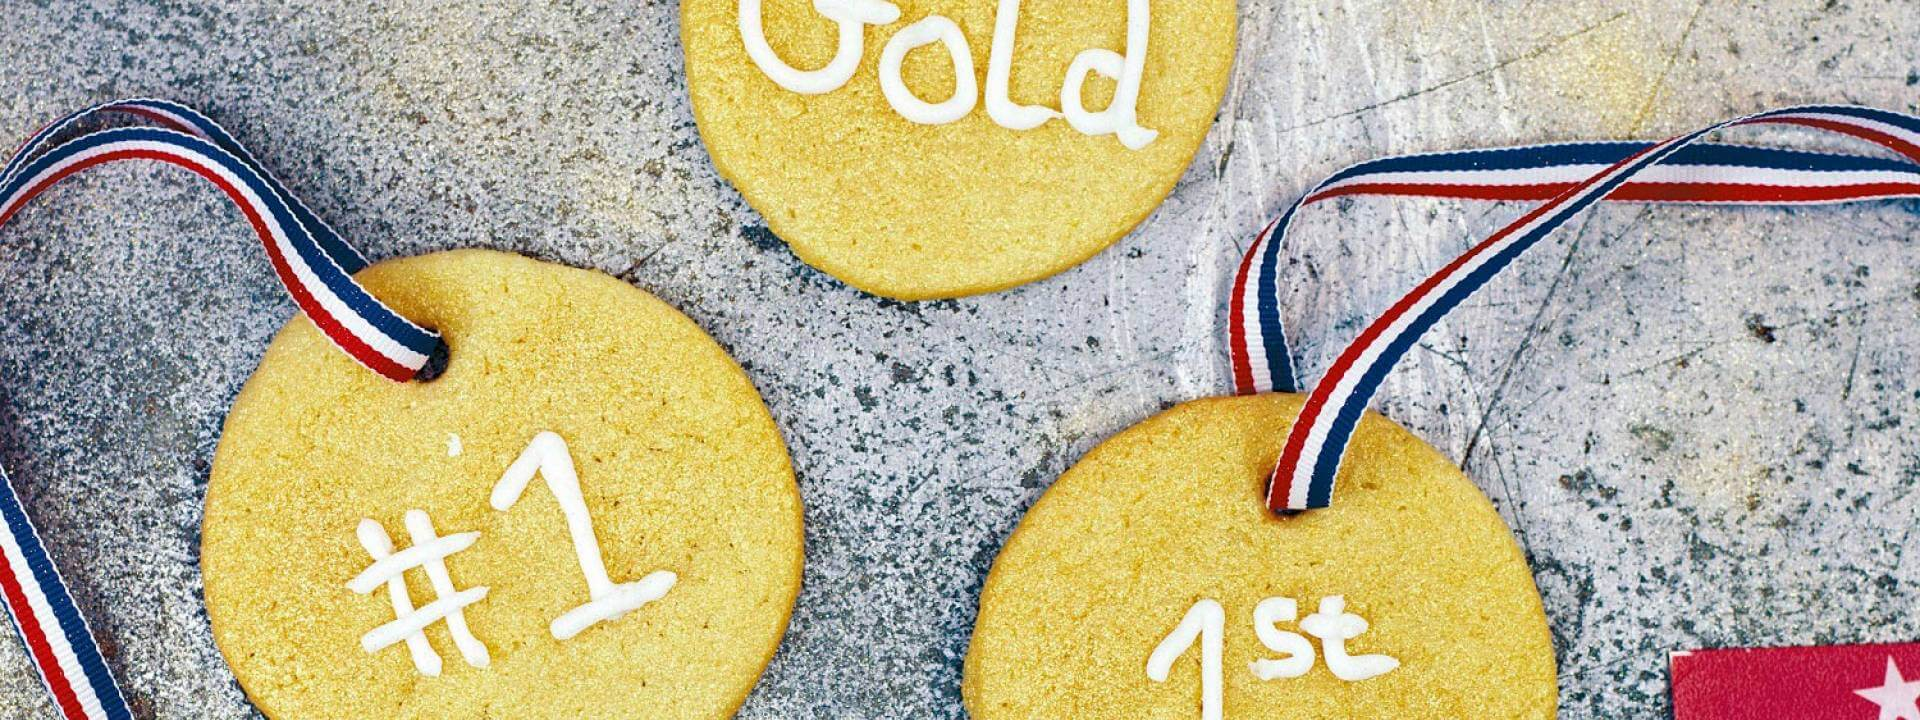 CroppedFocusedImage192072050-50-Gold-Medal-Biscuits-recipes